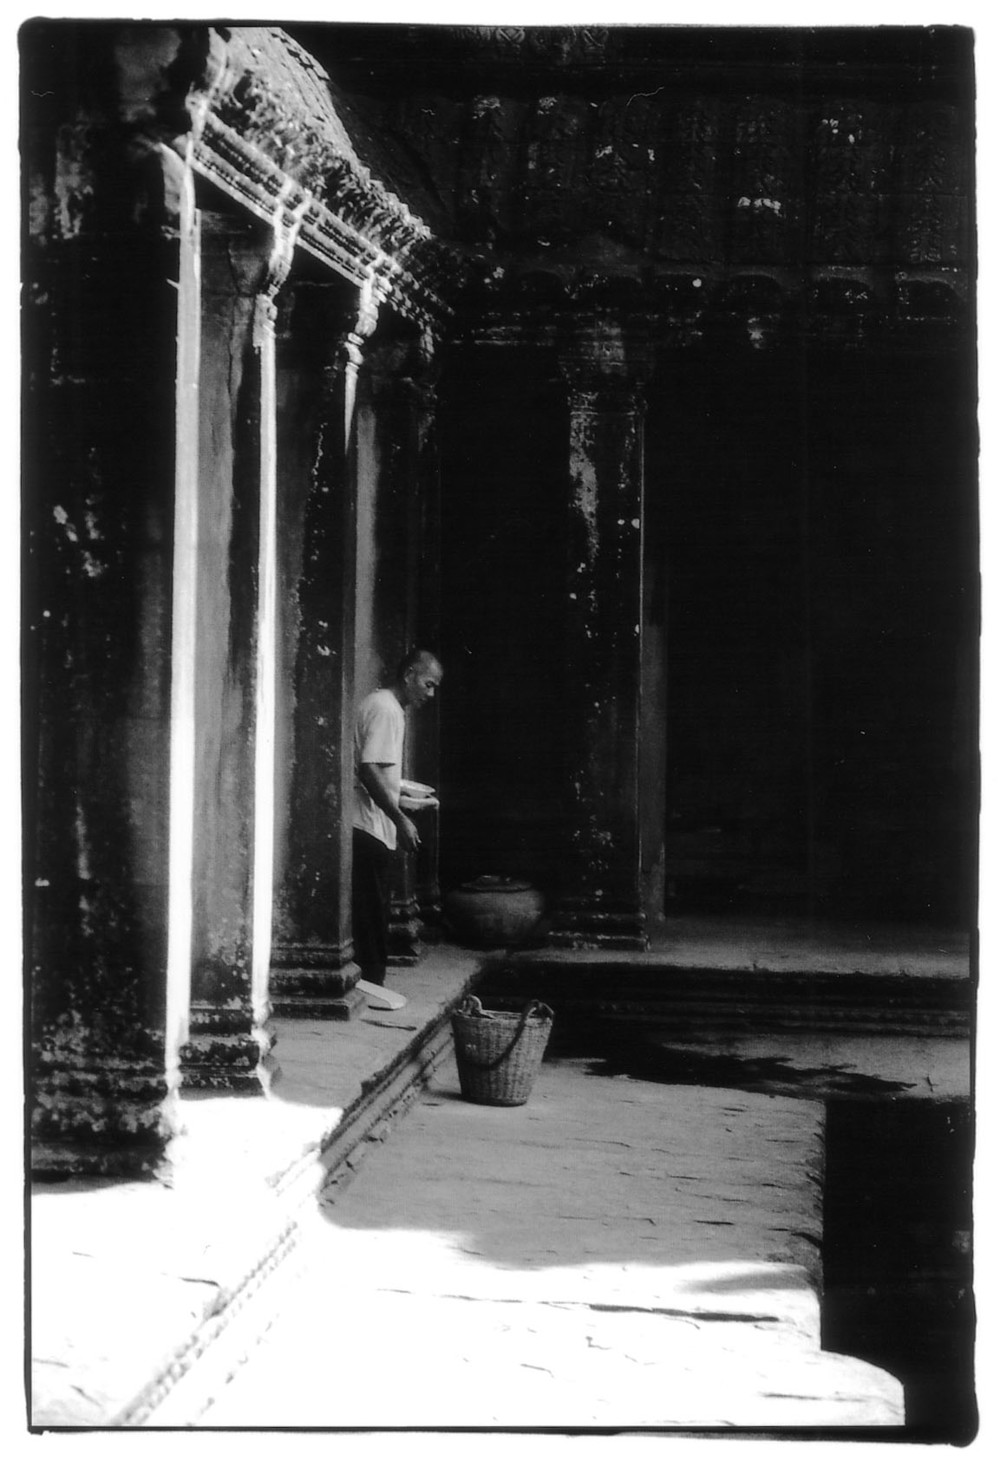 Angkor_Wat_Man_With_Basket.jpg